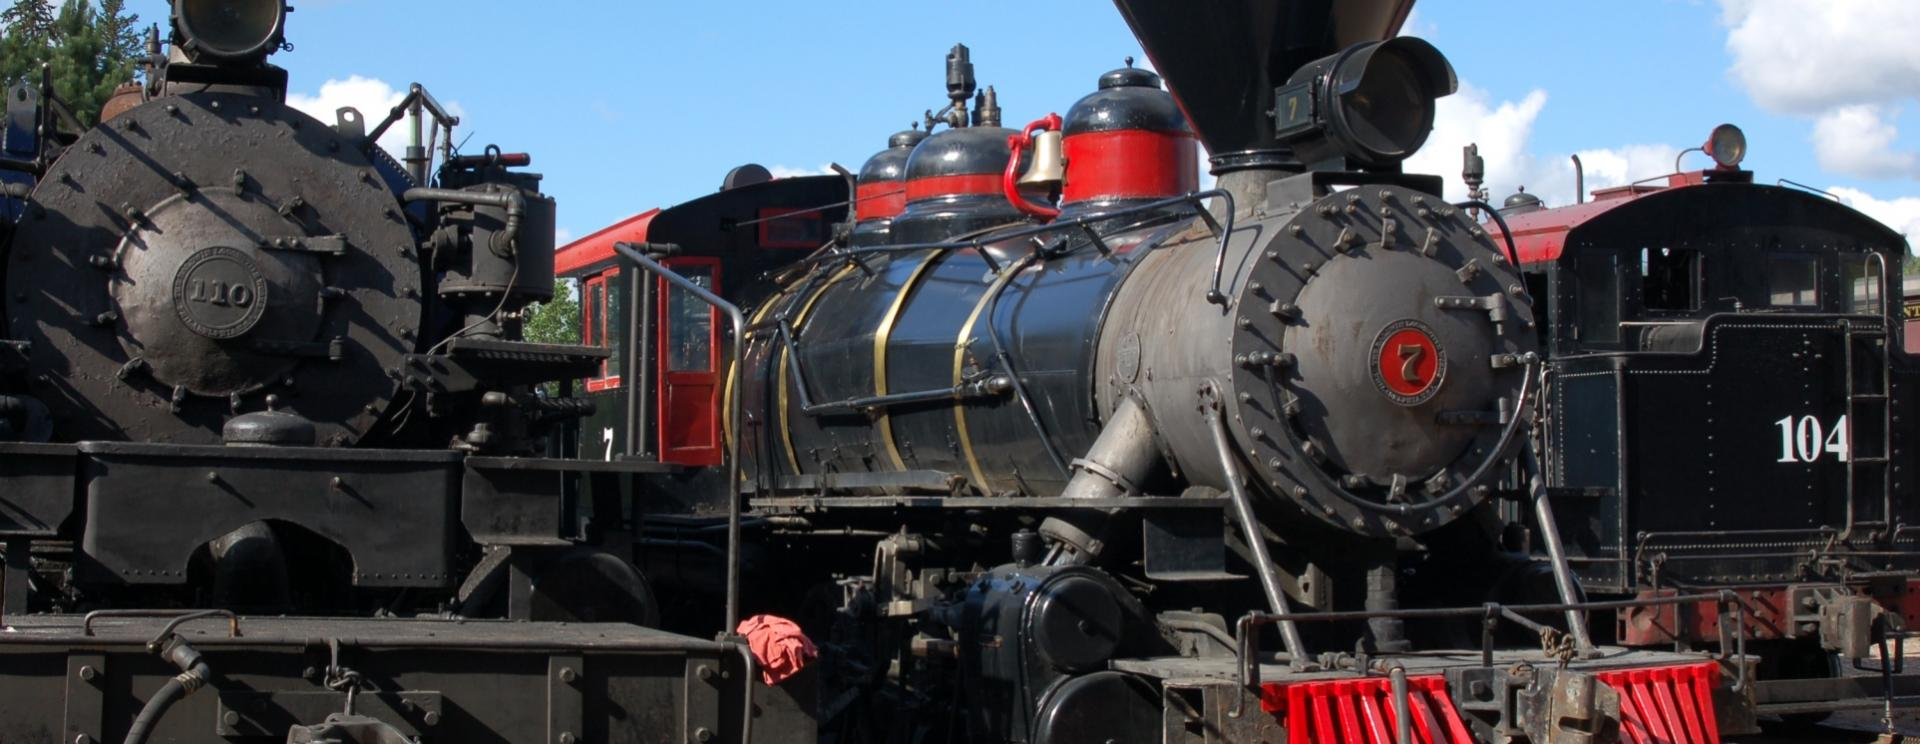 South Dakota State Railroad Museum